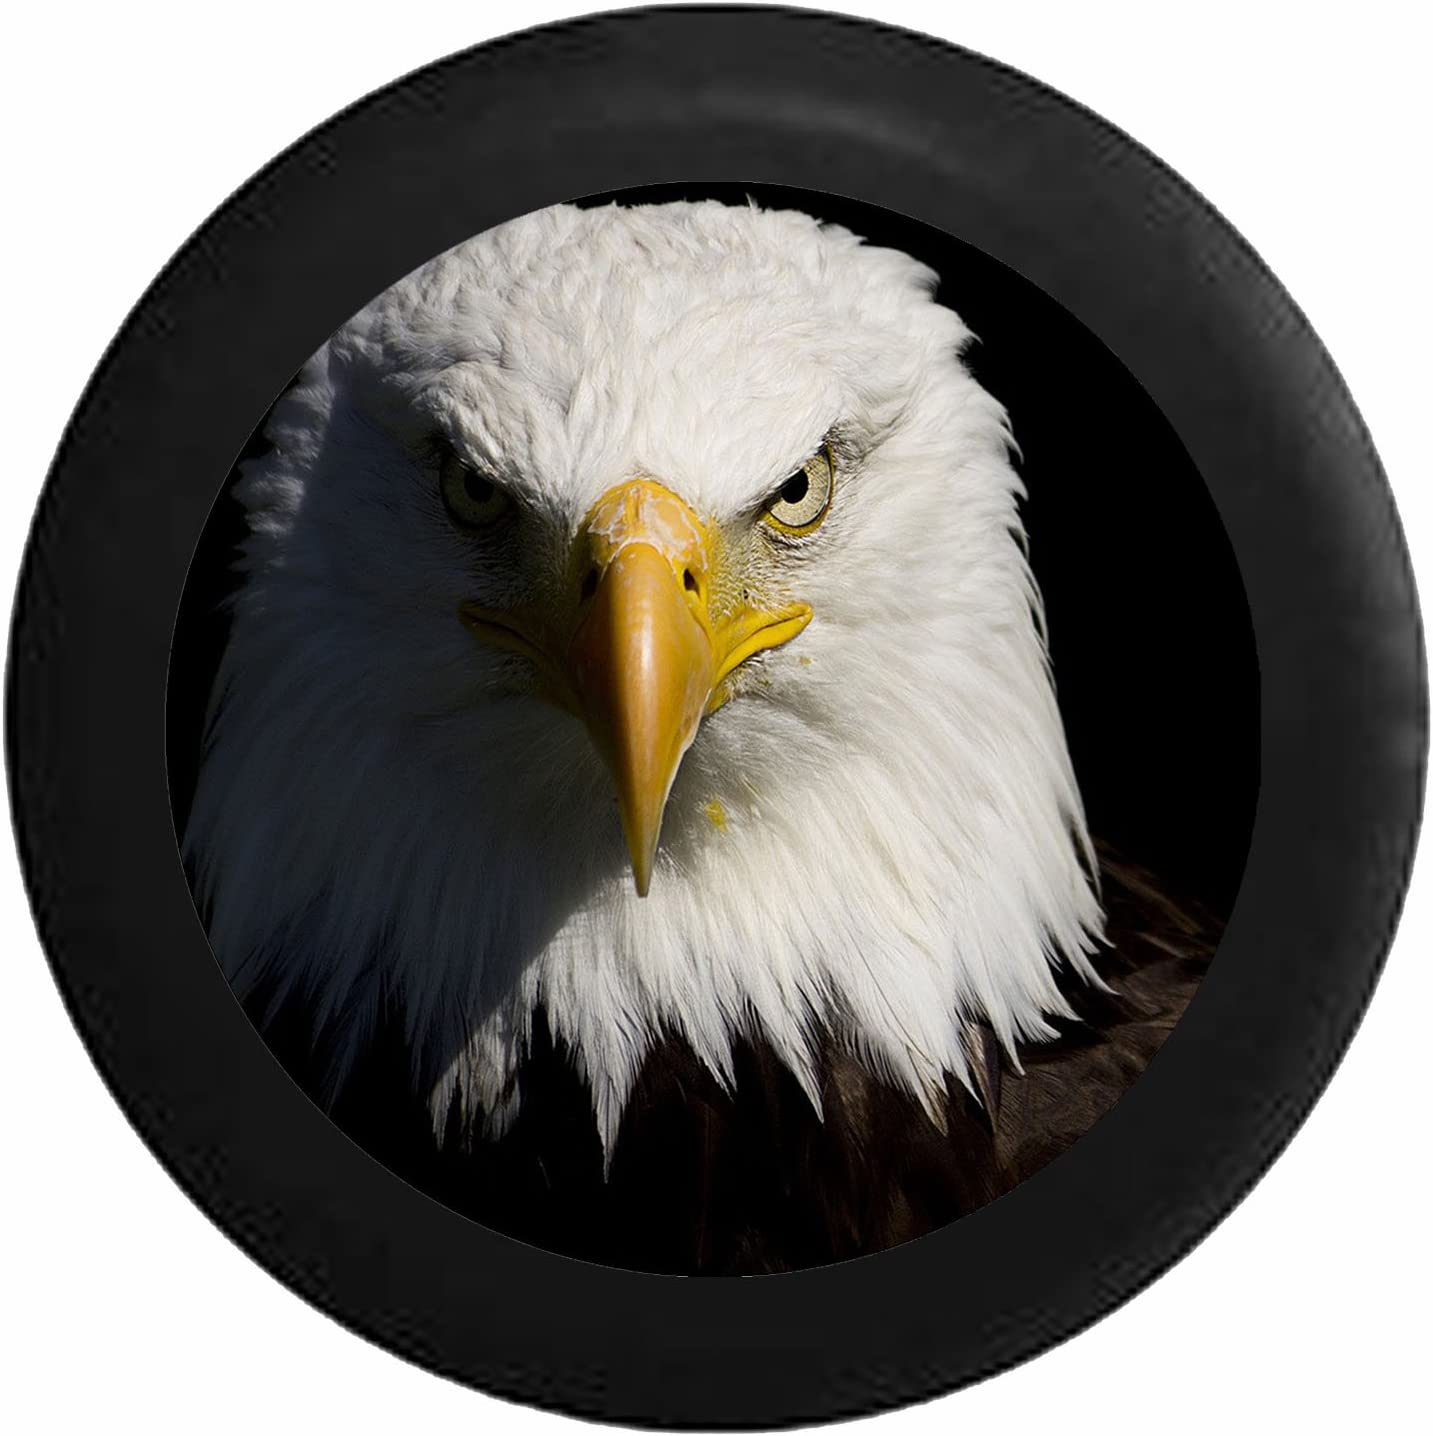 Pike Outdoors Full Color Staring American Bald Eagle Closeup Spare Tire Cover fits SUV Camper RV Accessories Black 26-27.5 in